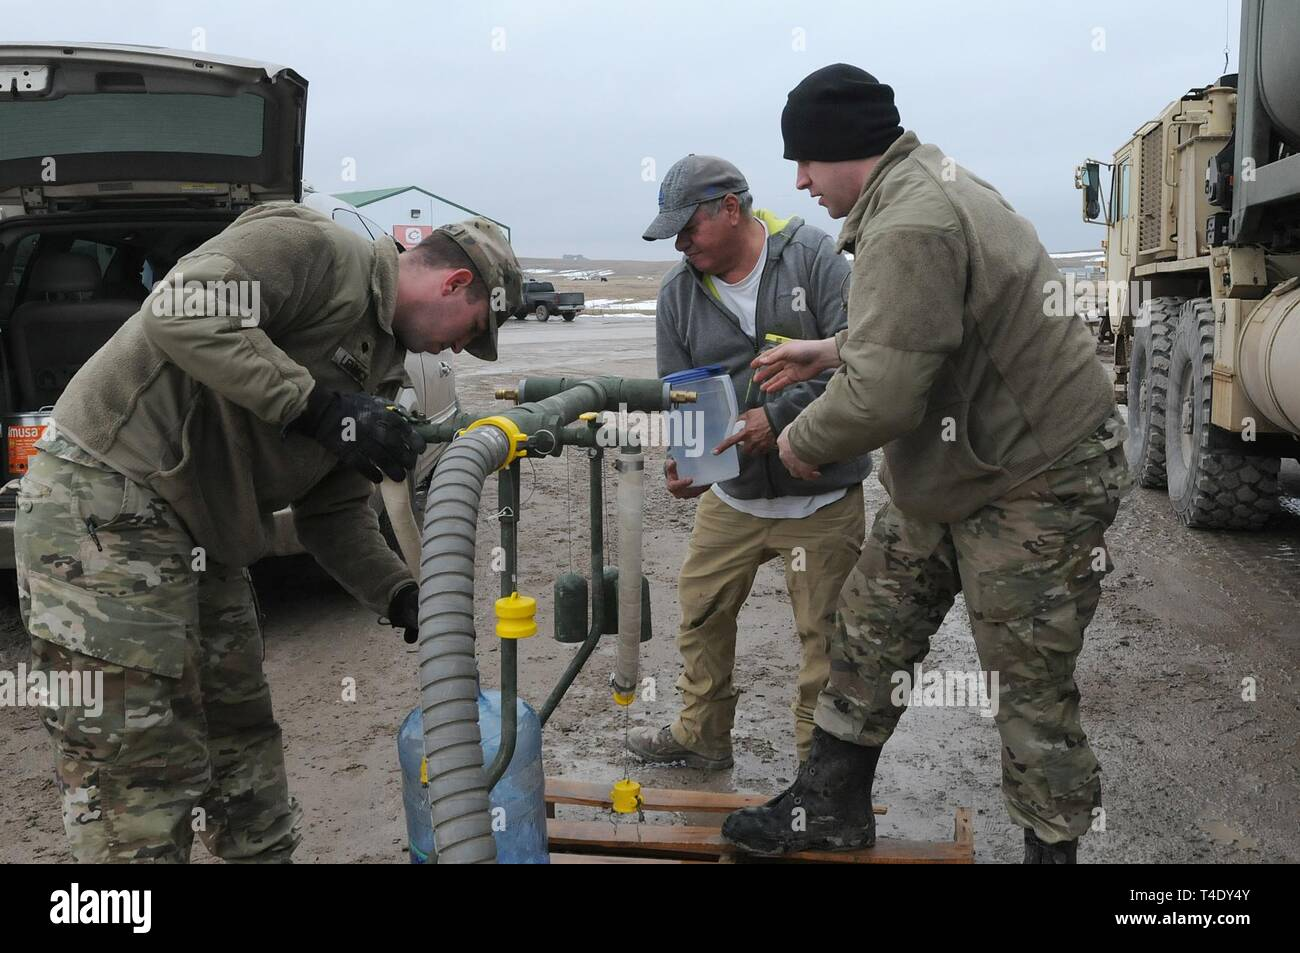 U.S. Army Sgt. David Fuegen, right, and Spc. Tracy Lennick, members with Company A, 139th Brigade Support Battalion, South Dakota Army National Guard, provide drinkable water to Lester Iron Cloud at Sharps Corner, S.D, on the Pine Ridge Reservation, March 25, 2019. Thirteen SDARNG Soldiers were activated for state duty in Pine Ridge after a county waterline failed due to extreme flooding leaving residents in seven communities without water in their homes. Stock Photo